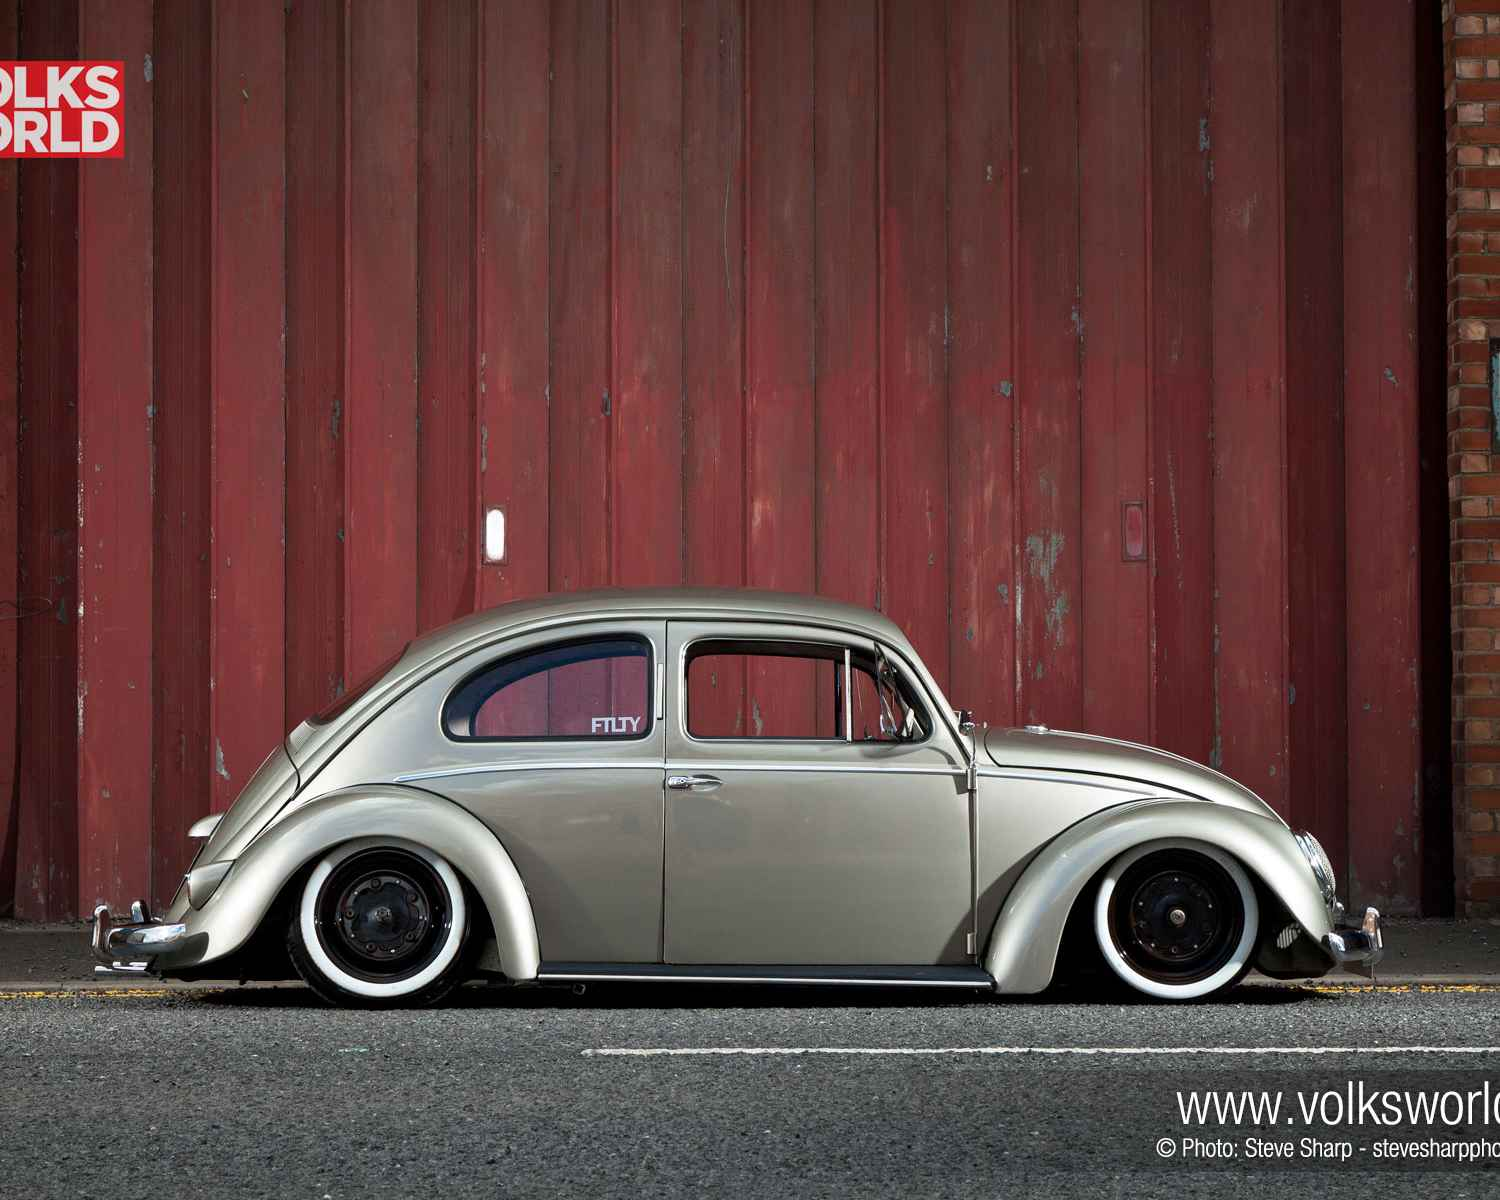 Rusty Volkswagen Beetle wallpapers 1070363, VW BeetleWallpapers